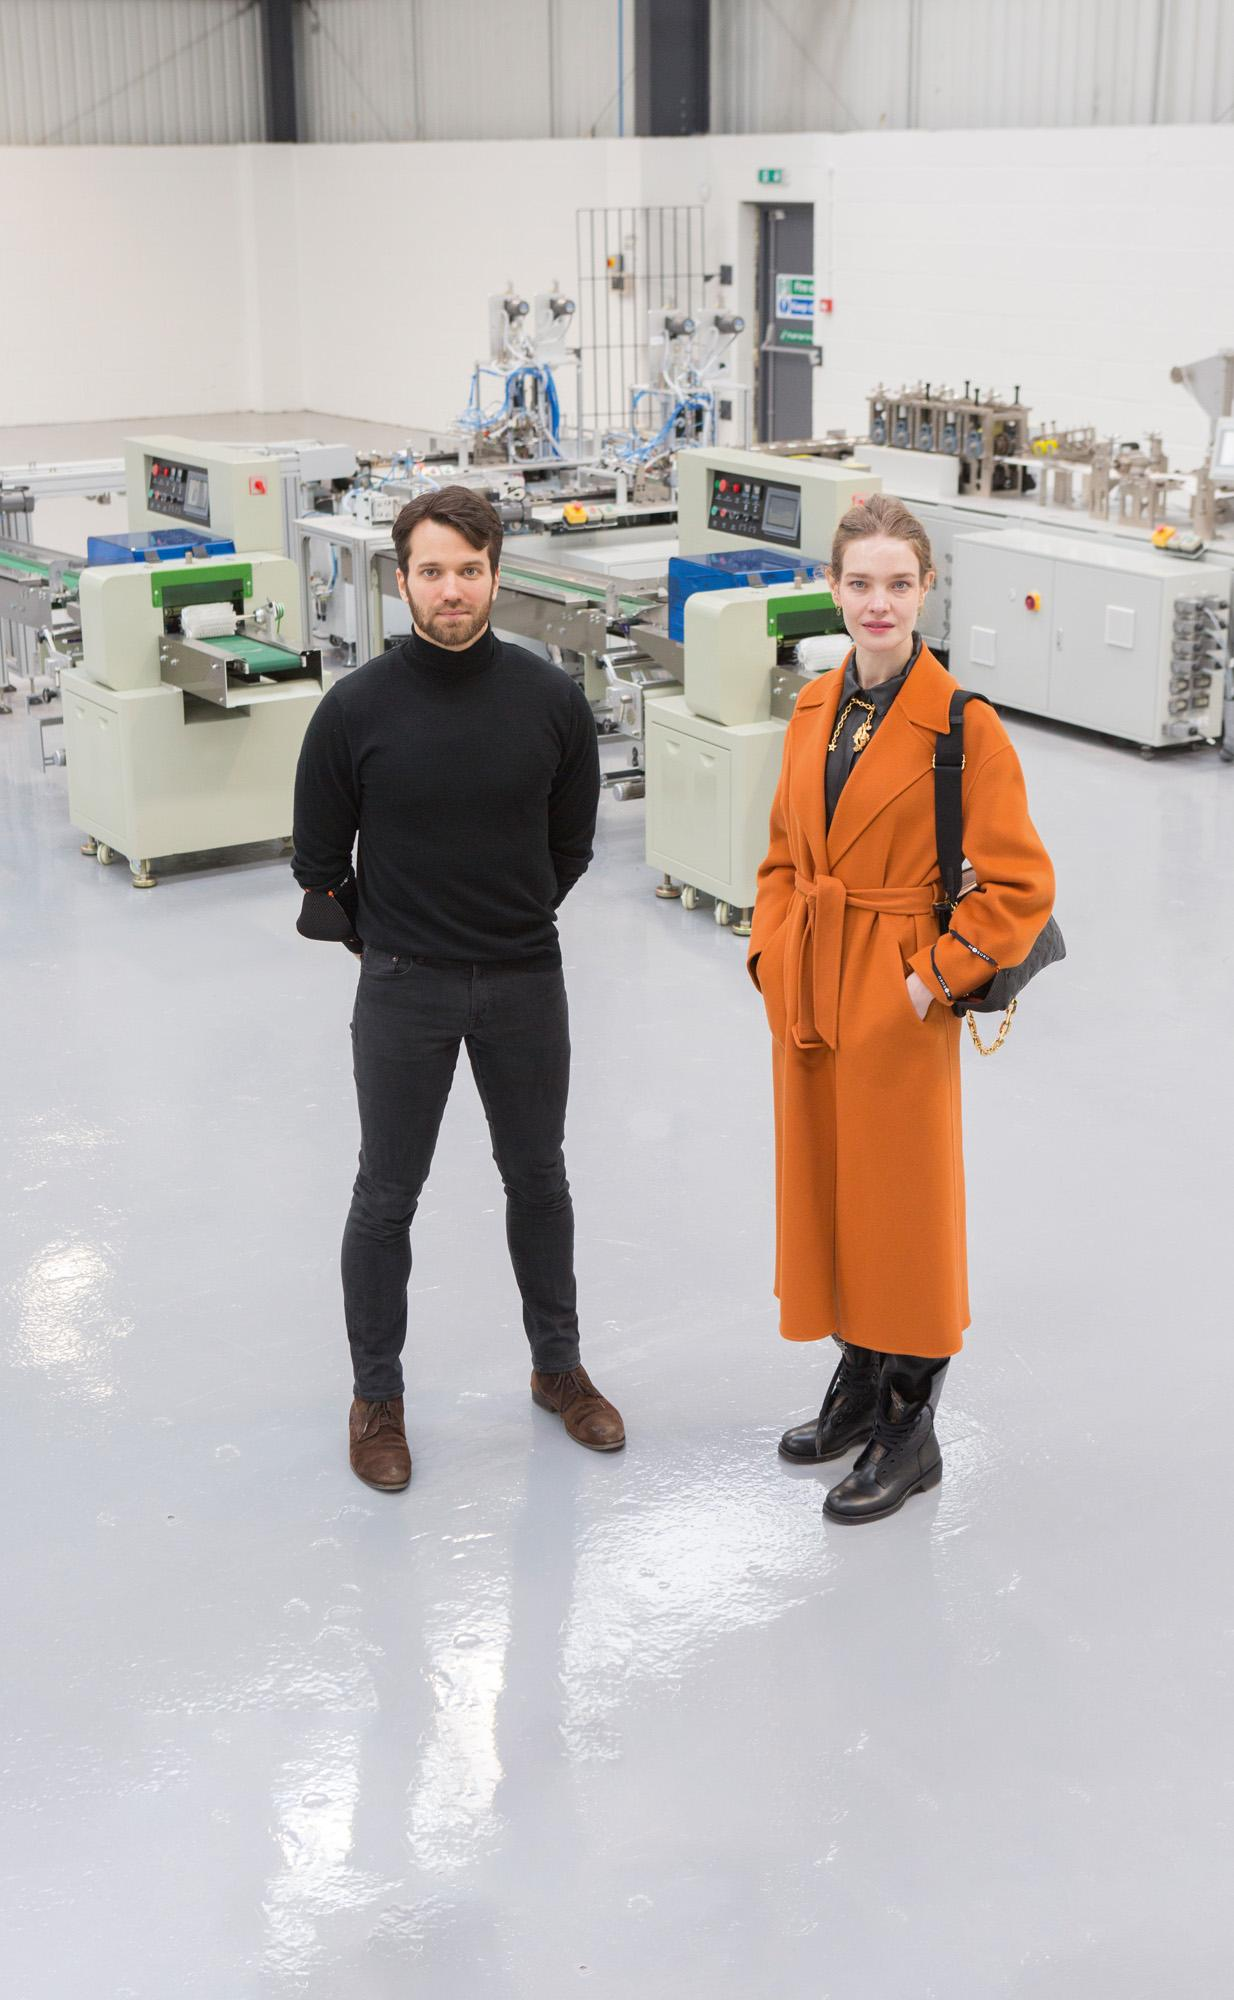 Pentatonic's CEO Johann Boedecker and Vodianova at the new state-of-the-art Masuku AirLab in Hellaby, South Yorkshire